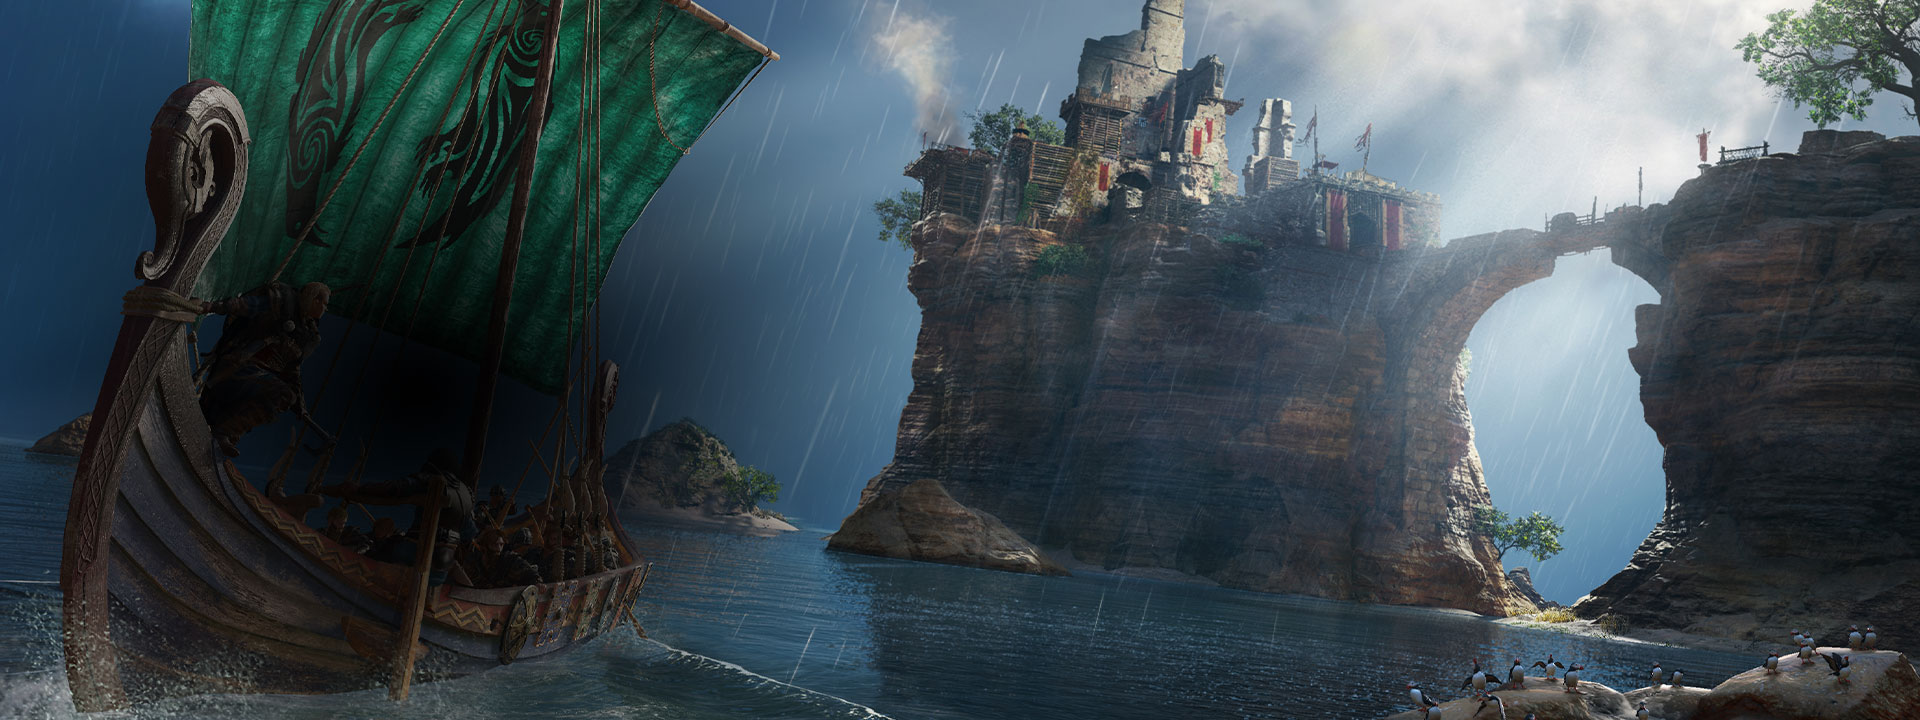 A ship sailing away from a castle from Assassin's Creed Valhalla